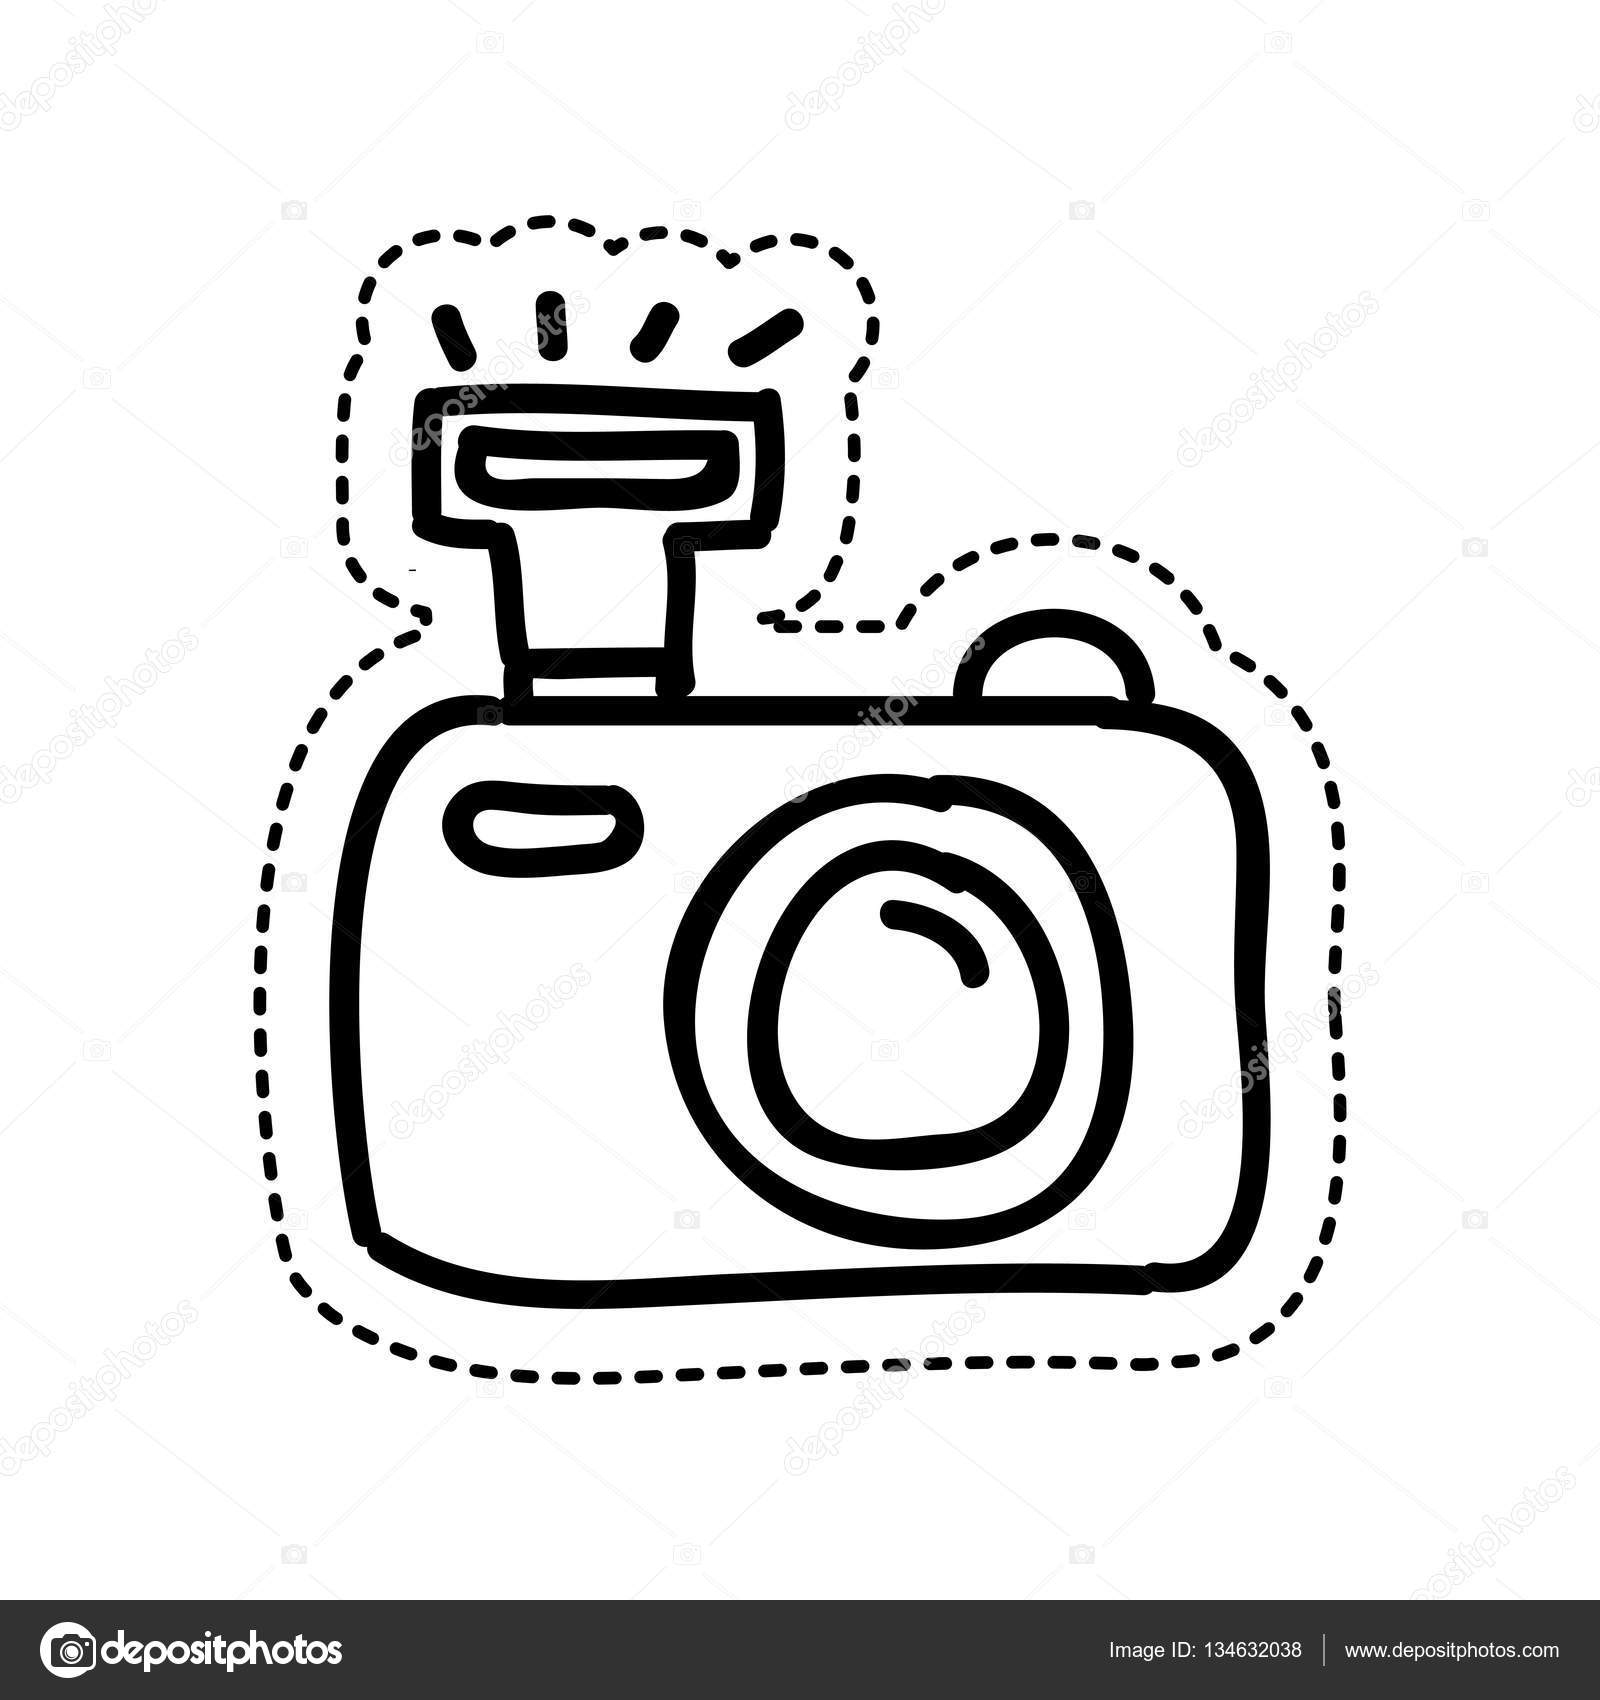 chat camera clip art